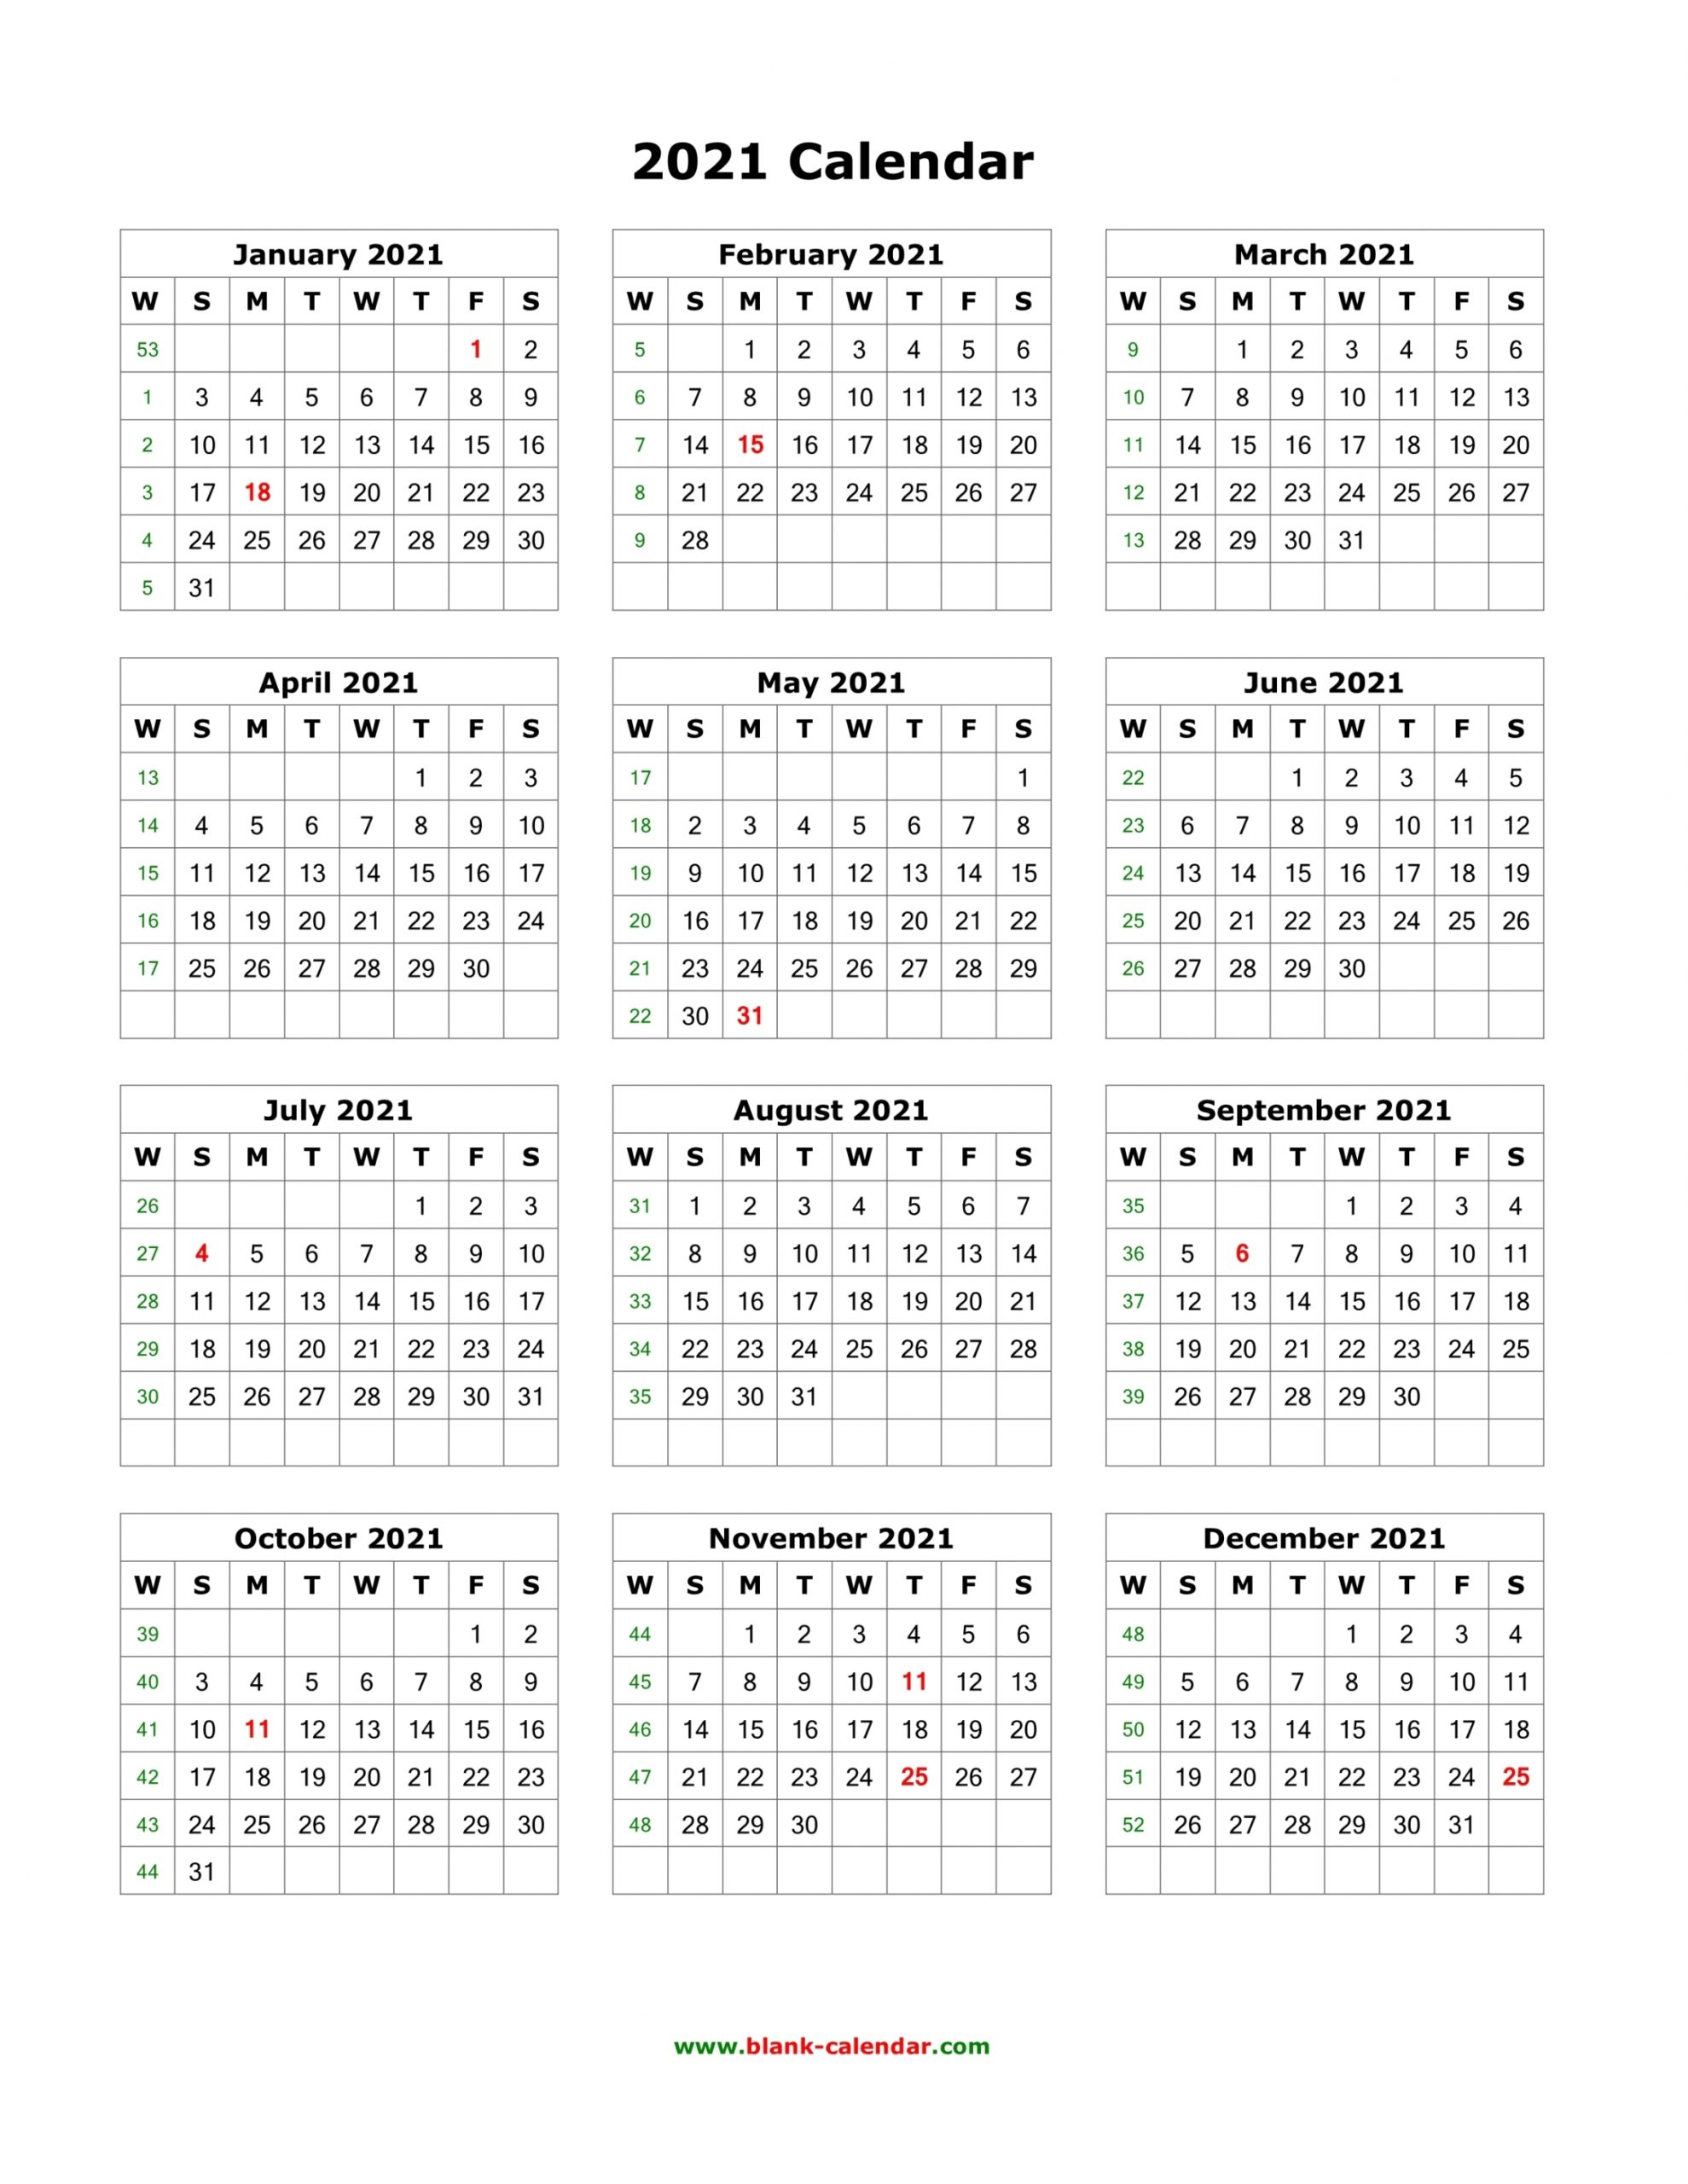 2021 Calendar One Page Template   Free Letter Templates